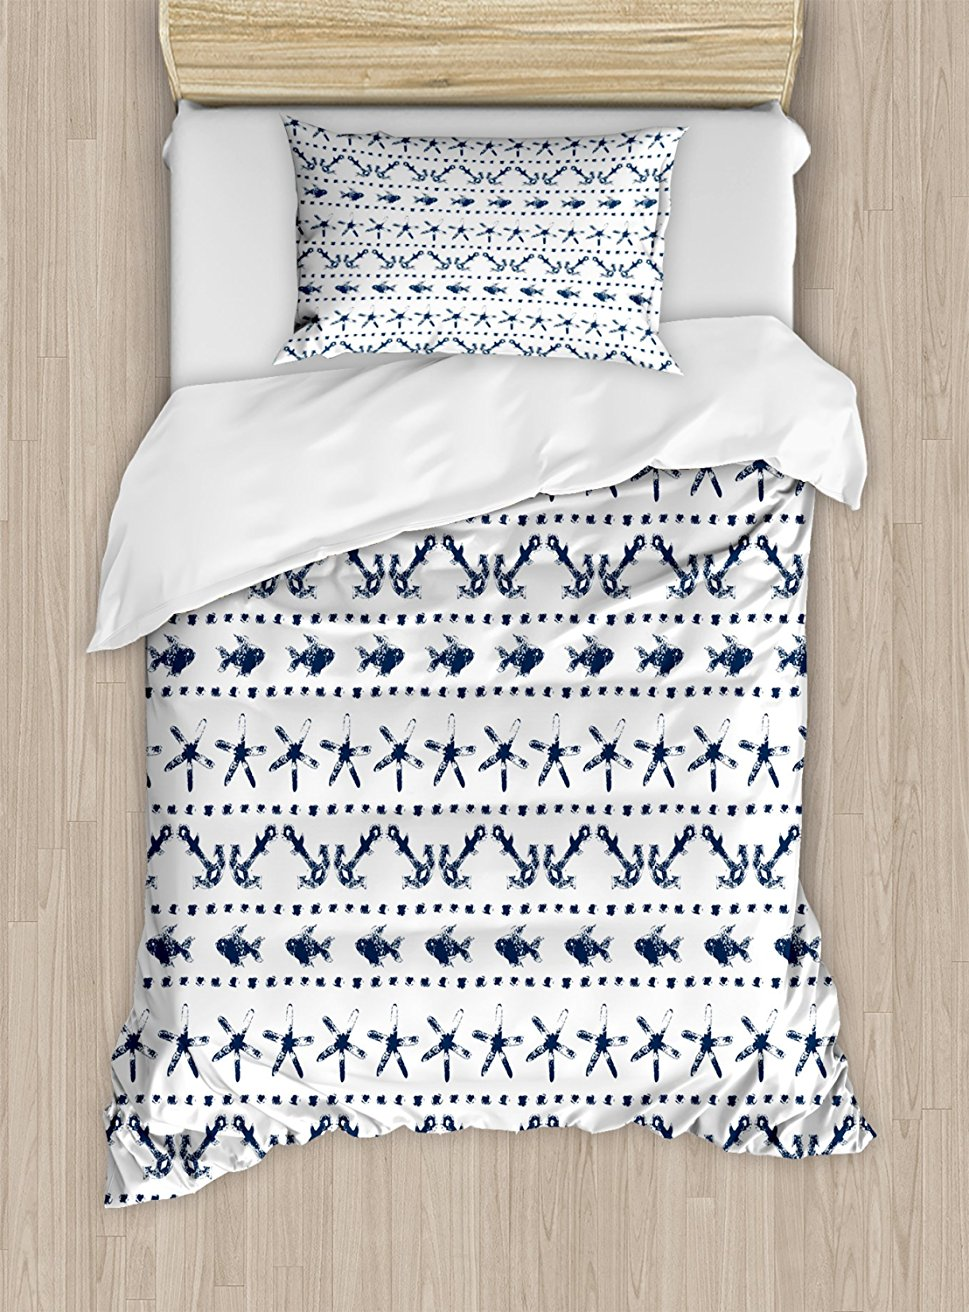 Navy Blue Duvet Cover Set Navy Yatch Themed Design with Fish Starfish and Anchor Nautical Marine Print 4 Piece Bedding Set